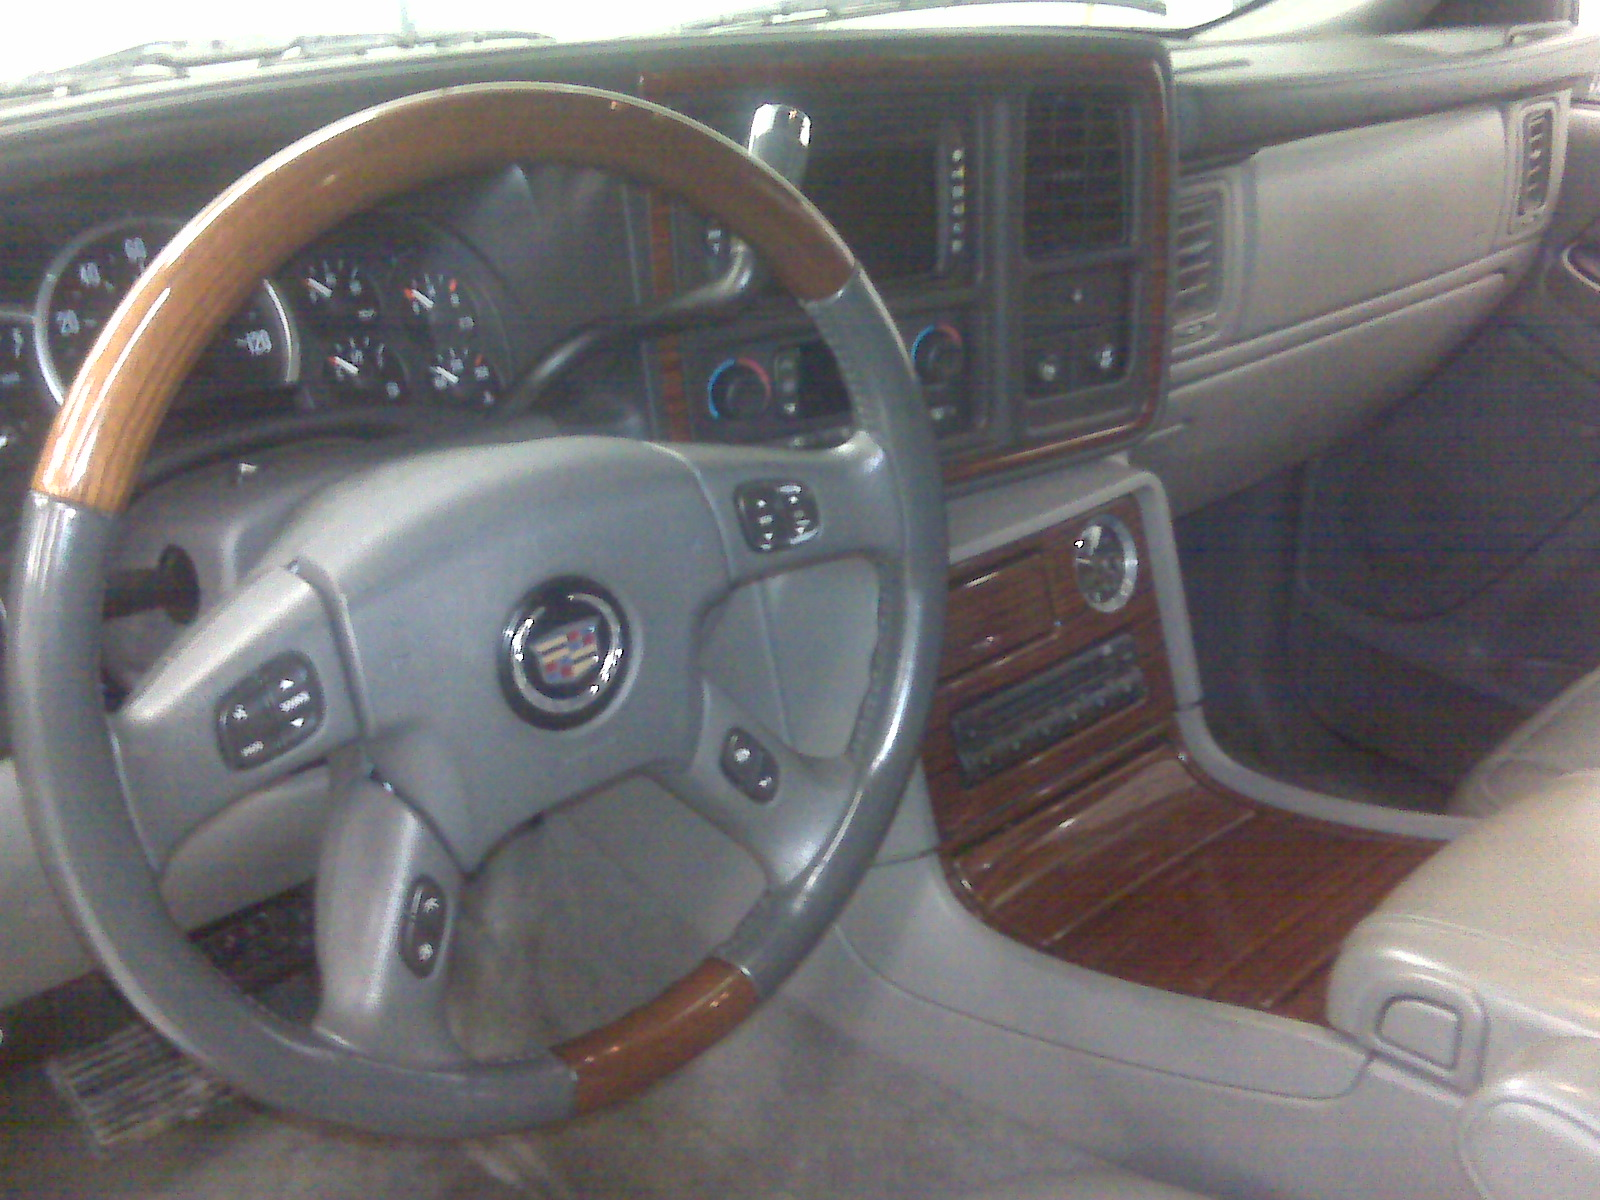 2004 Cadillac Escalade Inside Images & Pictures - Becuo